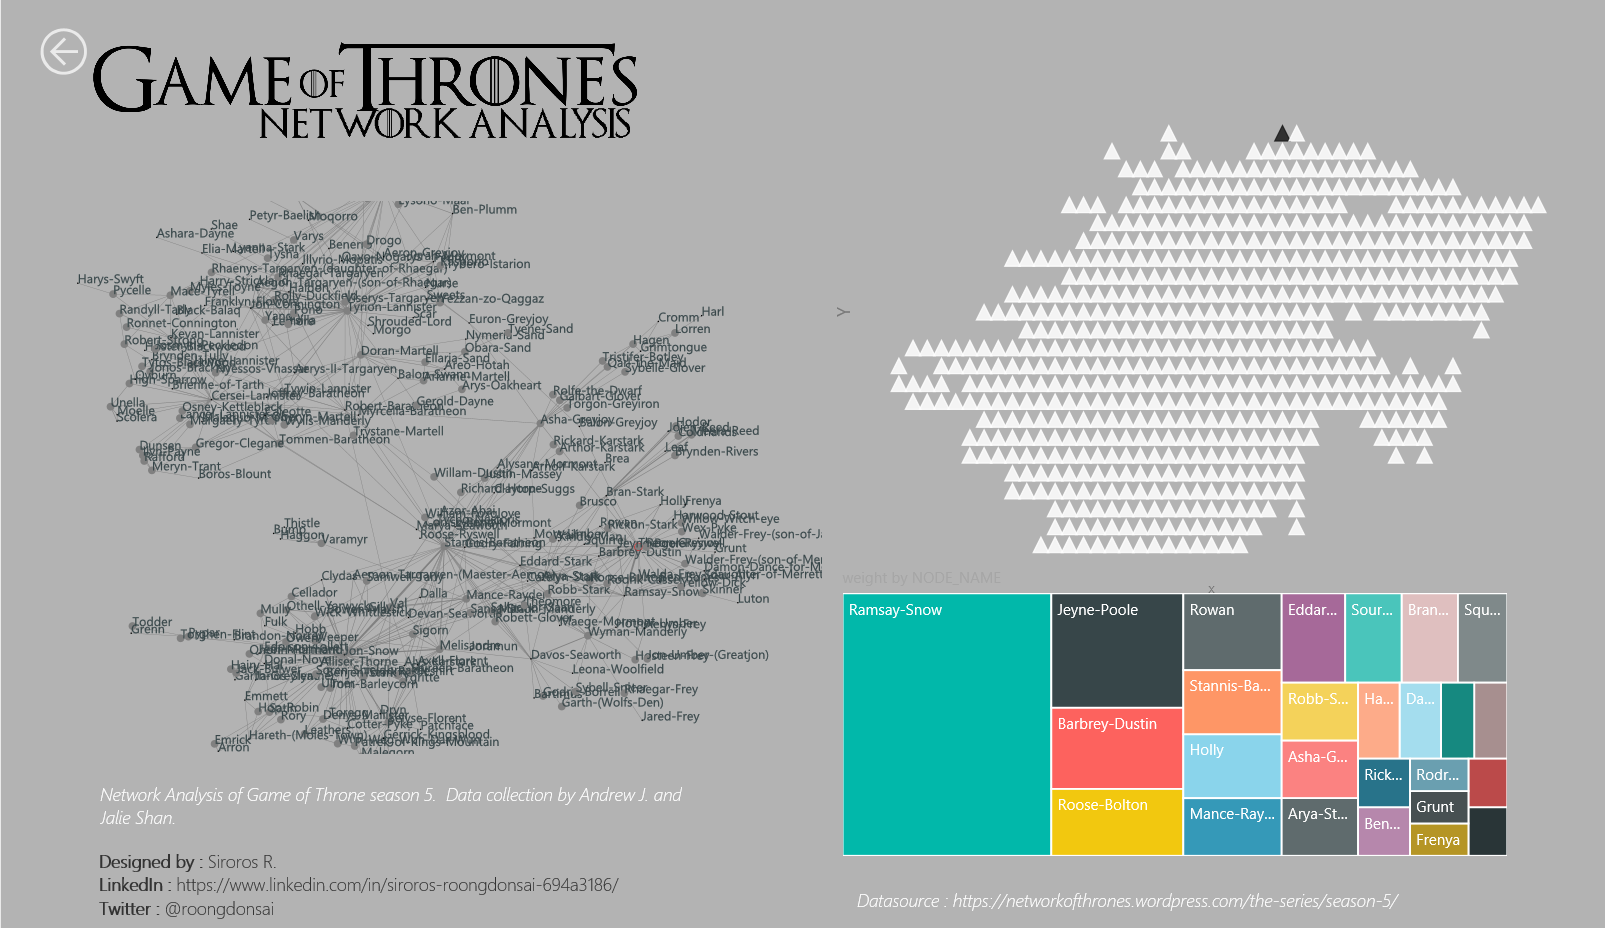 Game of Throne Network Analysis